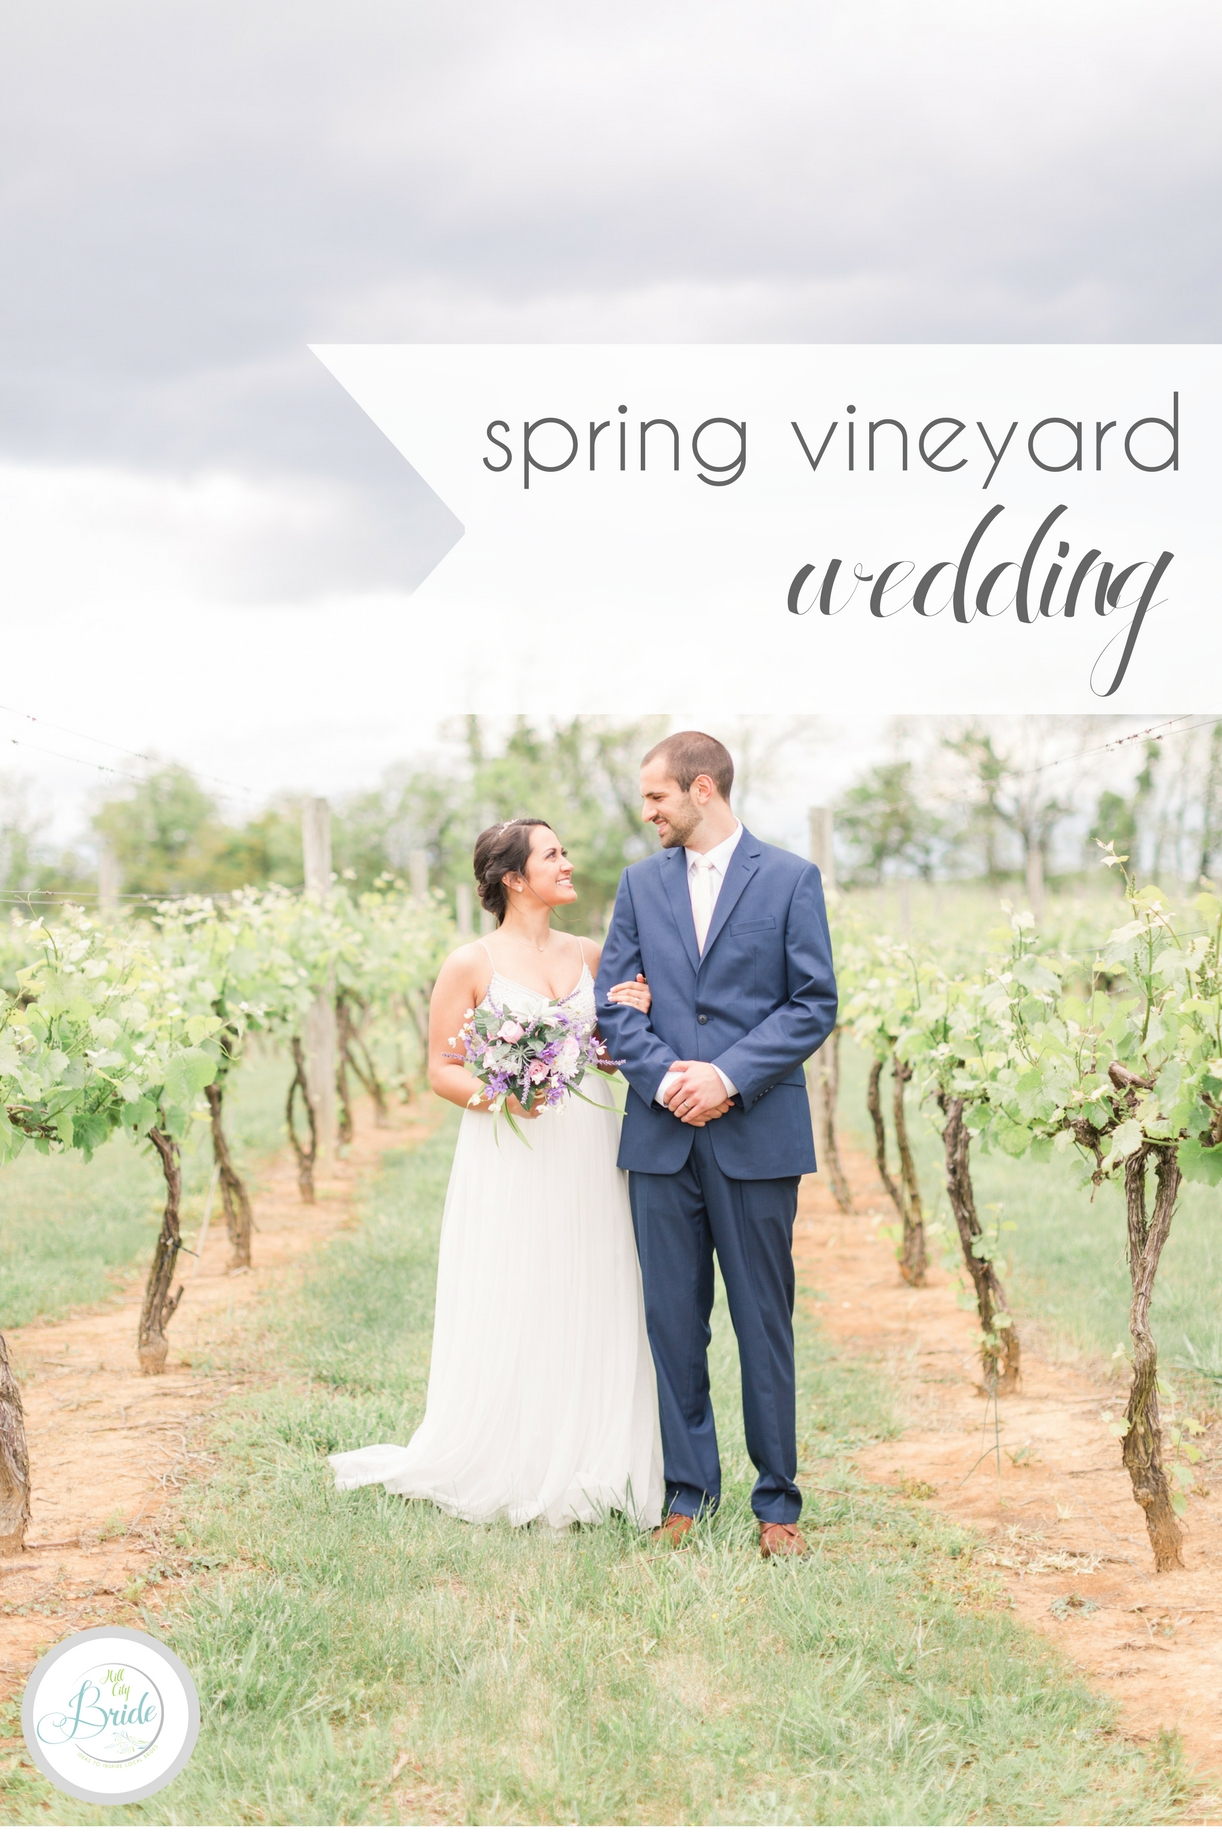 Spring Vineyard Wedding | Hill City Bride Virginia Weding Blog